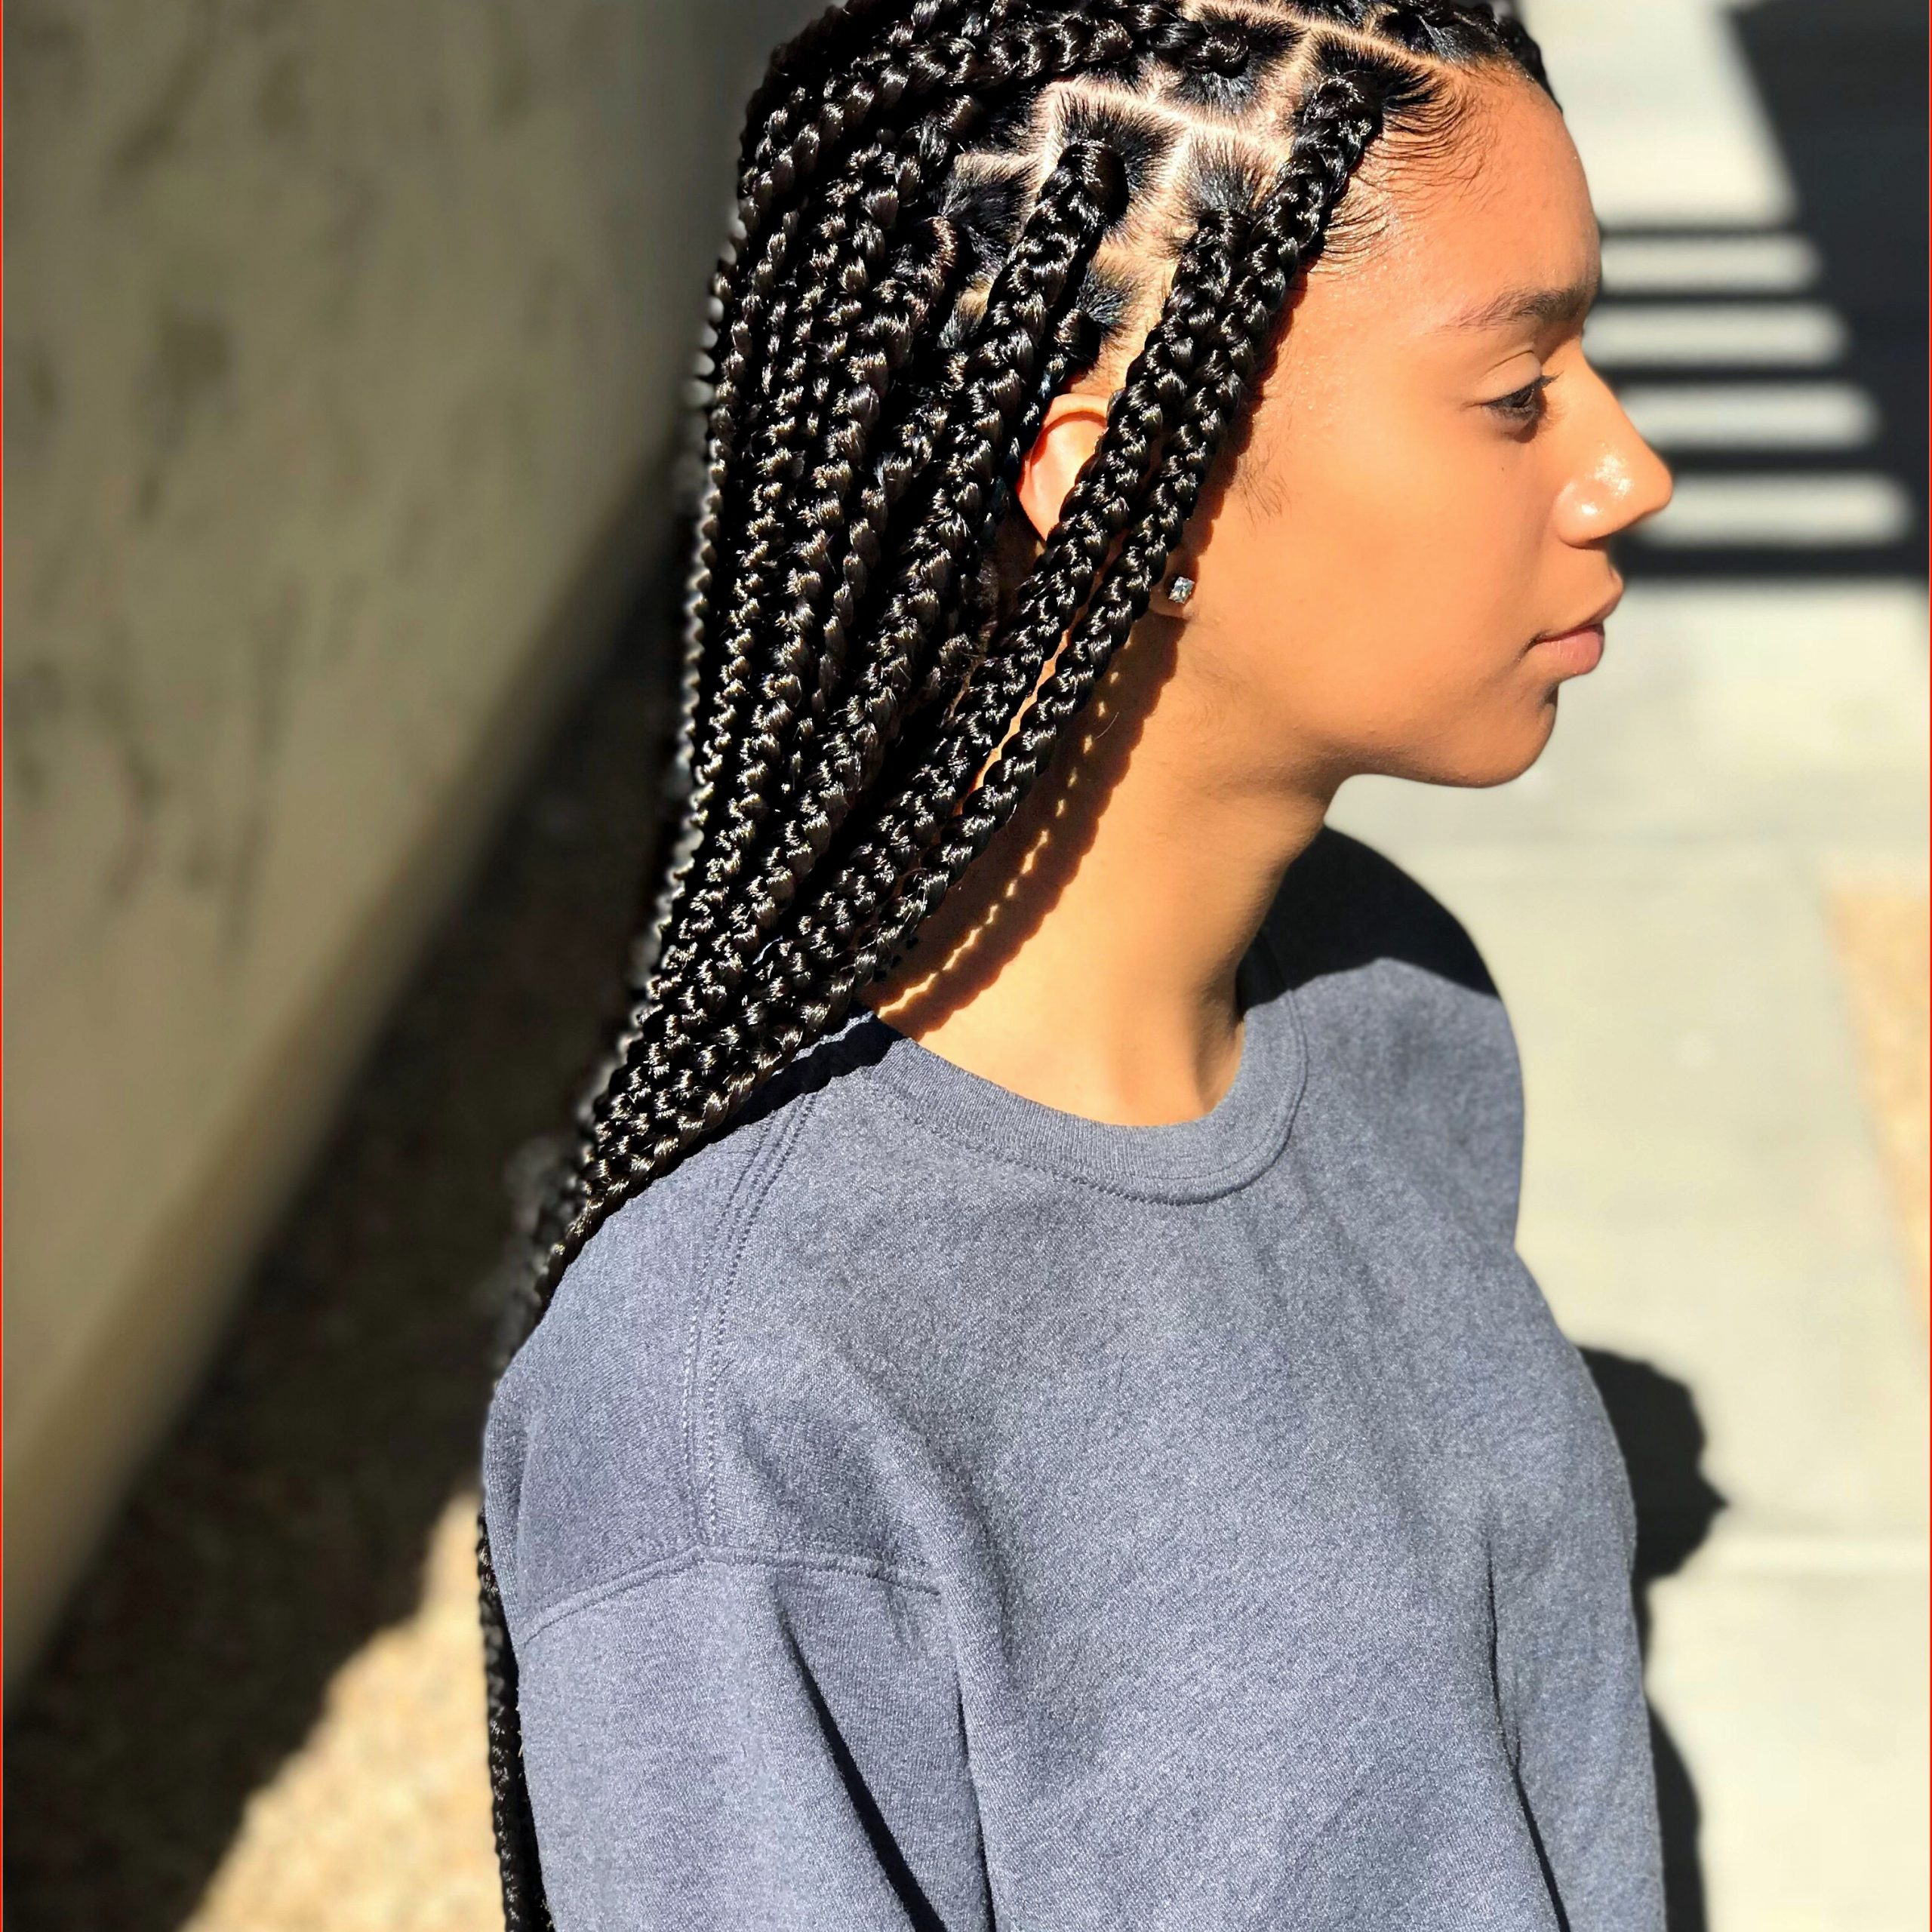 2019 Cornrow Accent Braids Hairstyles Within Beautiful Cornrows 2019 Hairstyles Gallery Of Hairstyles (View 2 of 20)